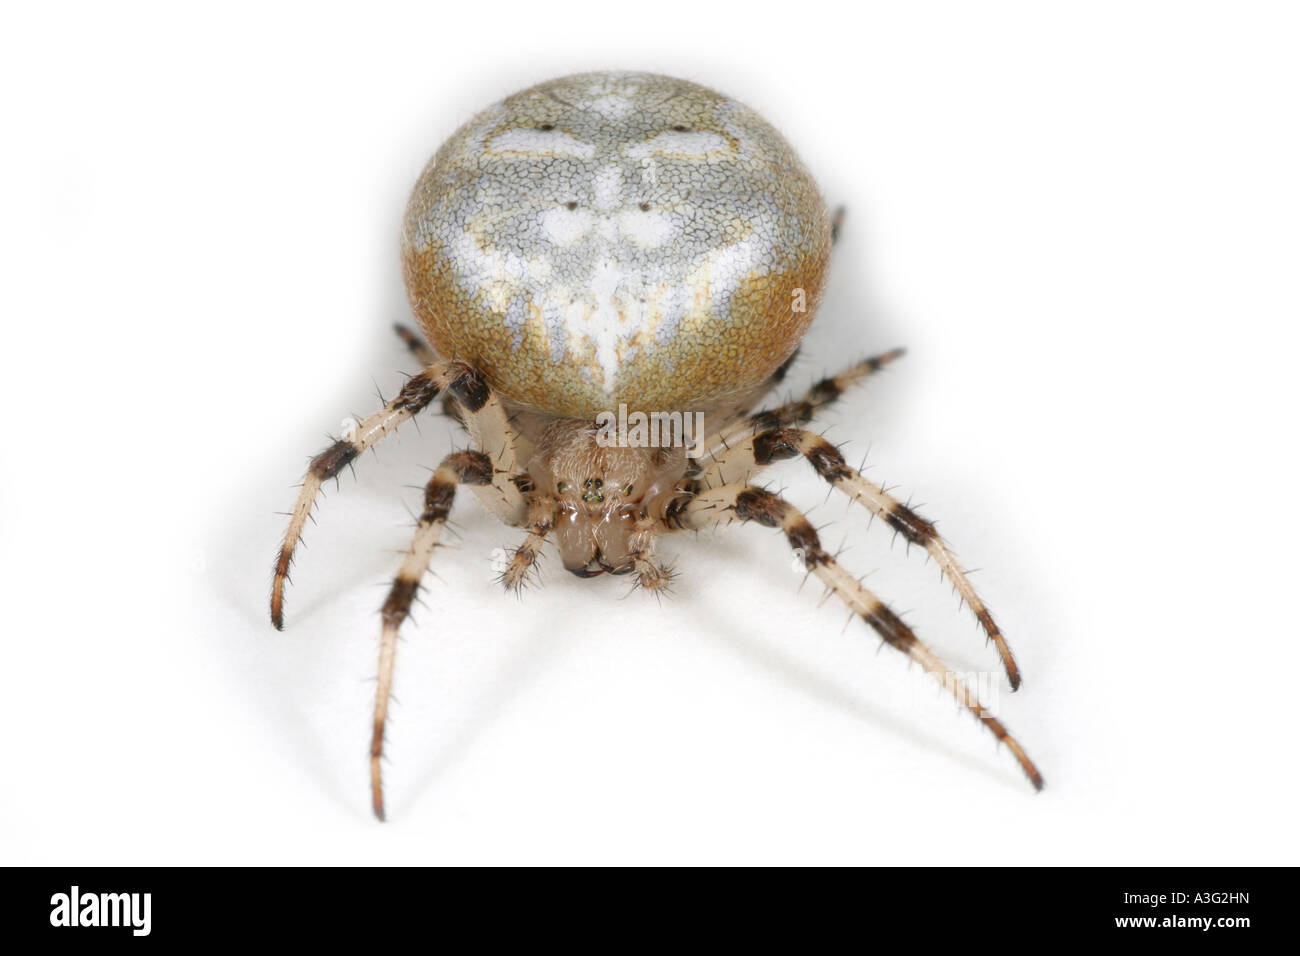 Araneus Quadratus spider on white background. Four Spot Orbweaver. Stock Photo